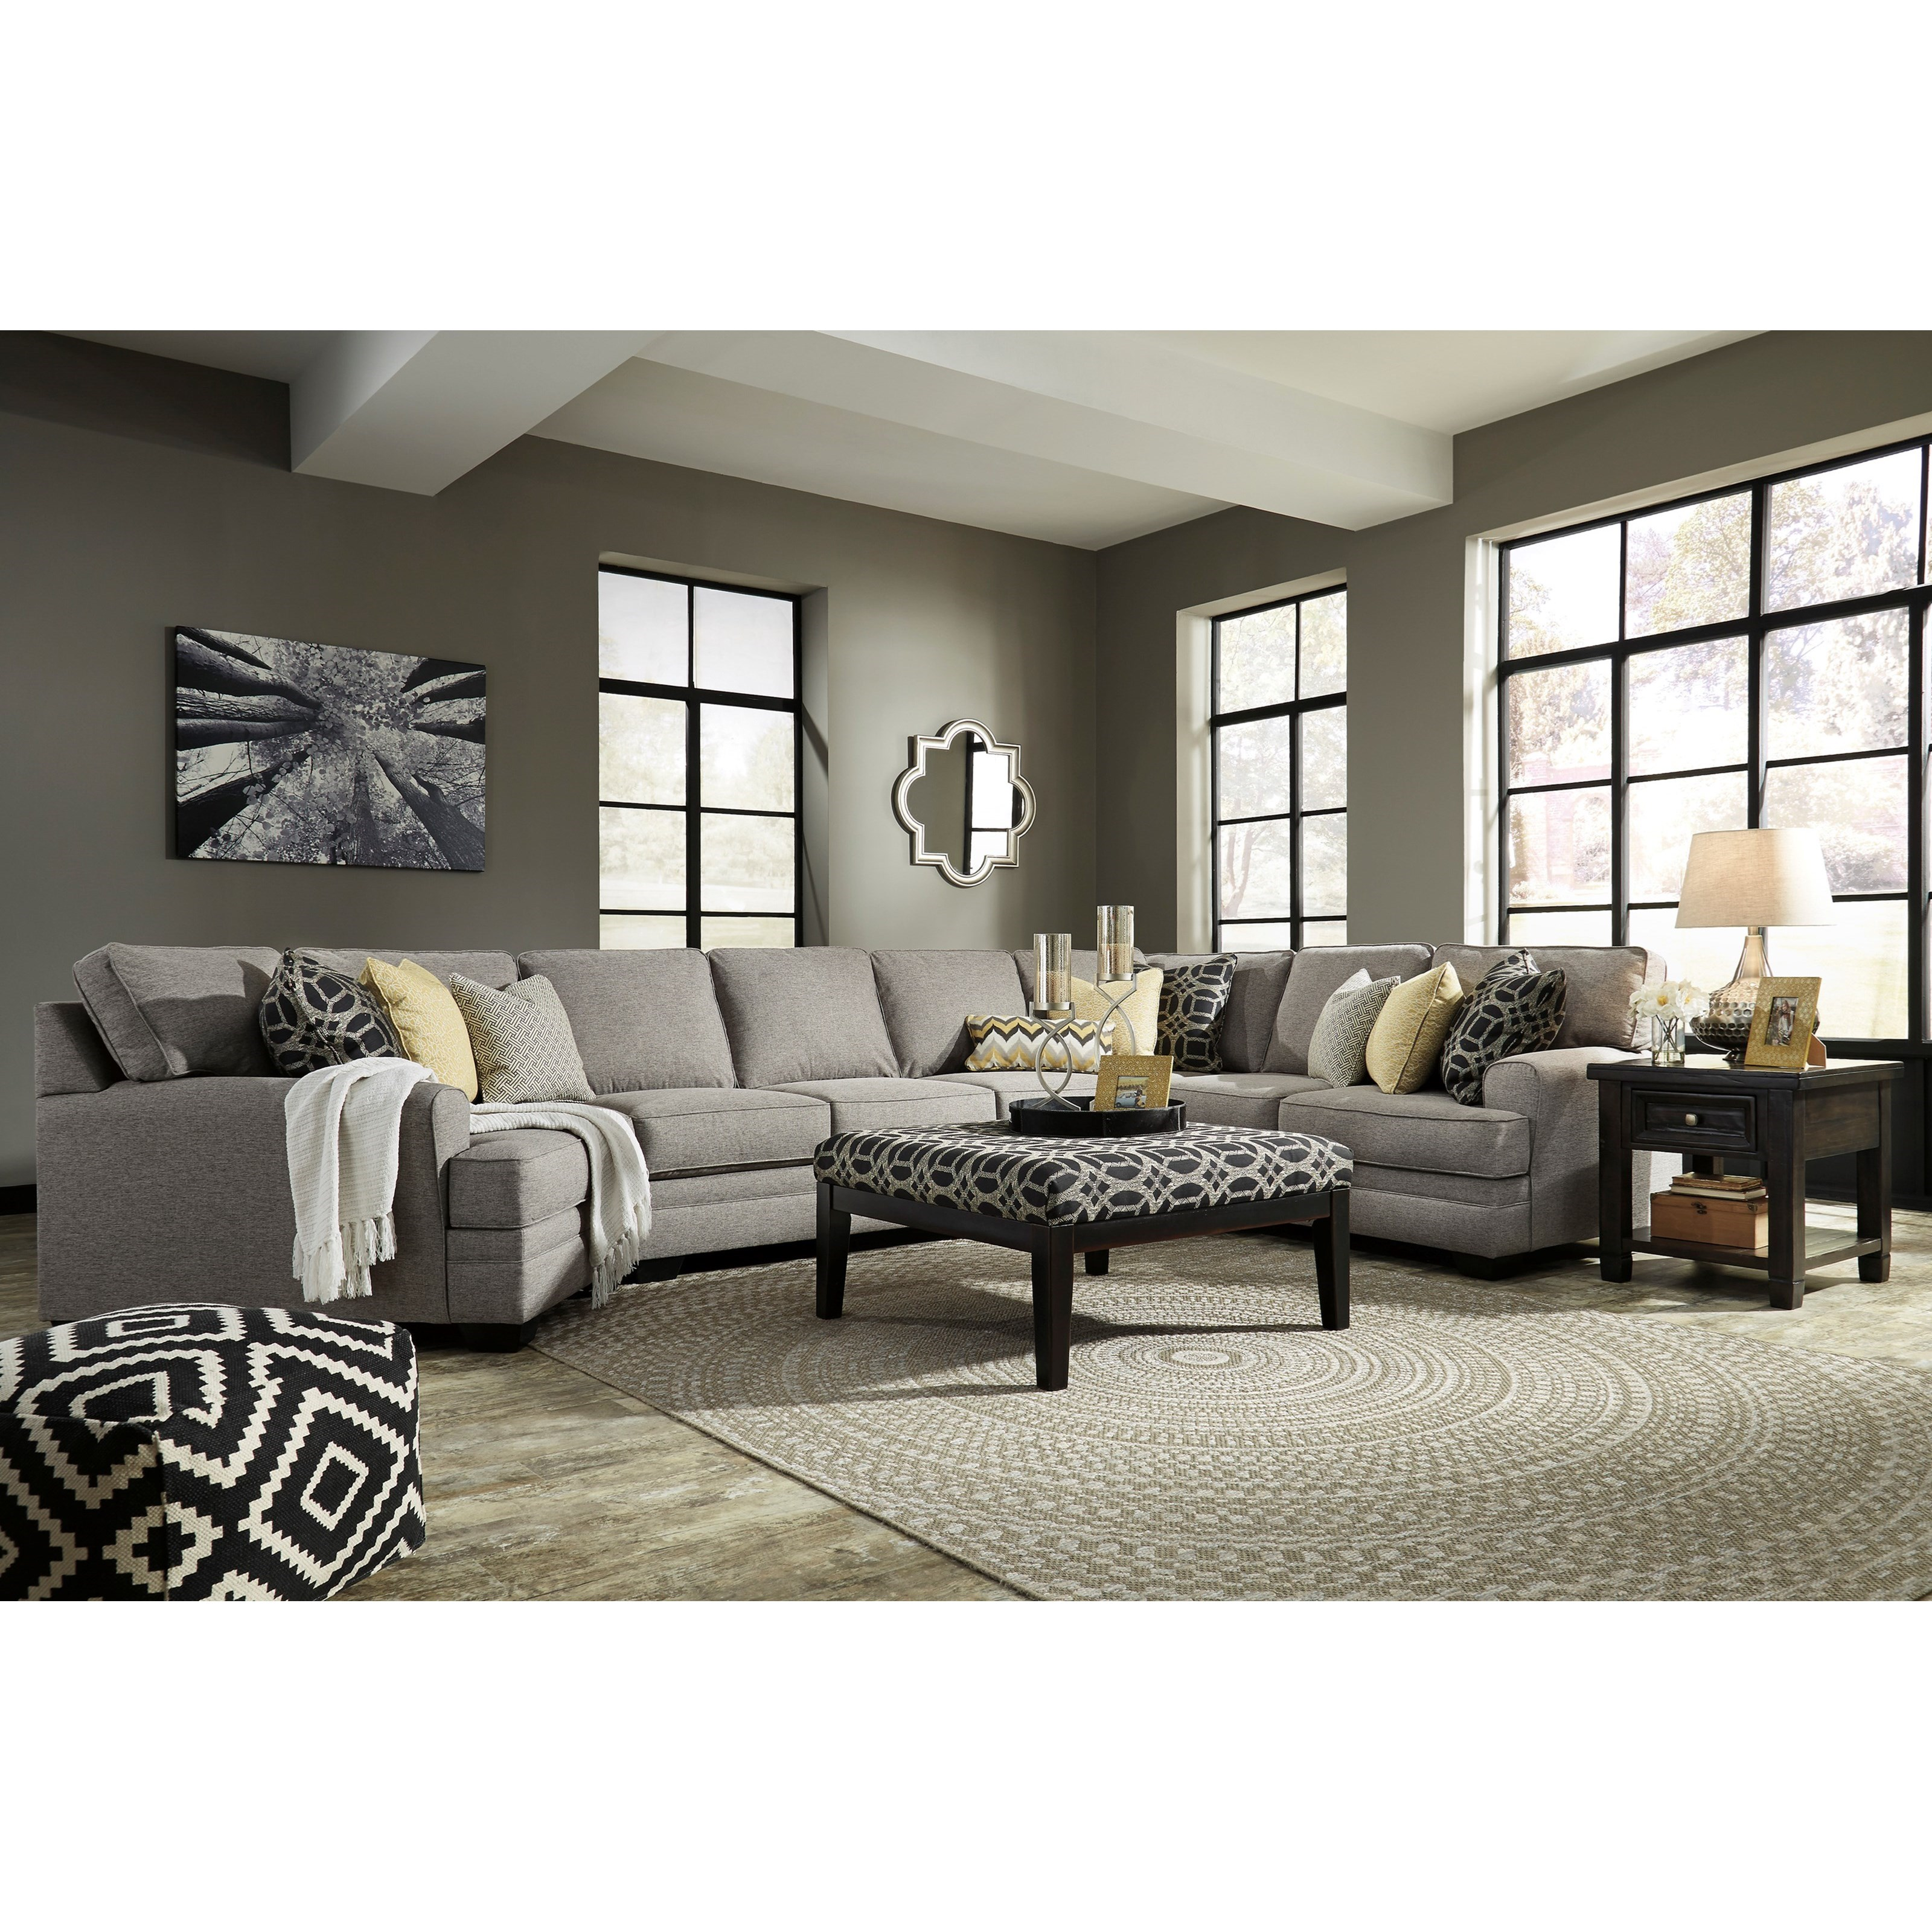 Benchcraft Cresson Stationary Living Room Group - Item Number: 54907 Living Room Group 21